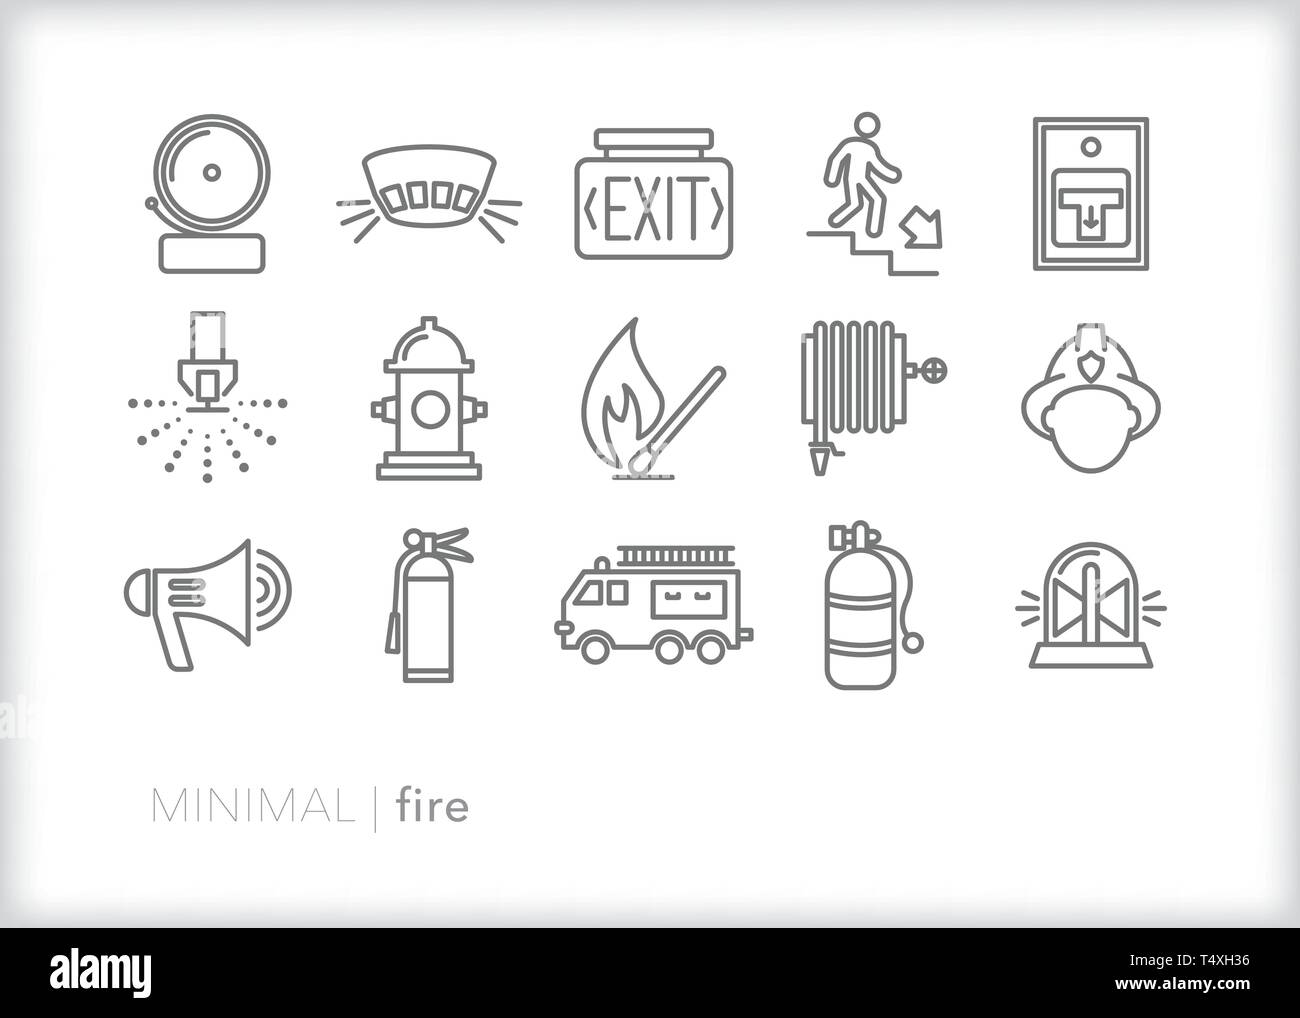 Set of 15 fire safety line icons for businesses and homes including smoke detector, exit sign, alarm, fireman, fire truck, hydrant, and sprinkler - Stock Image